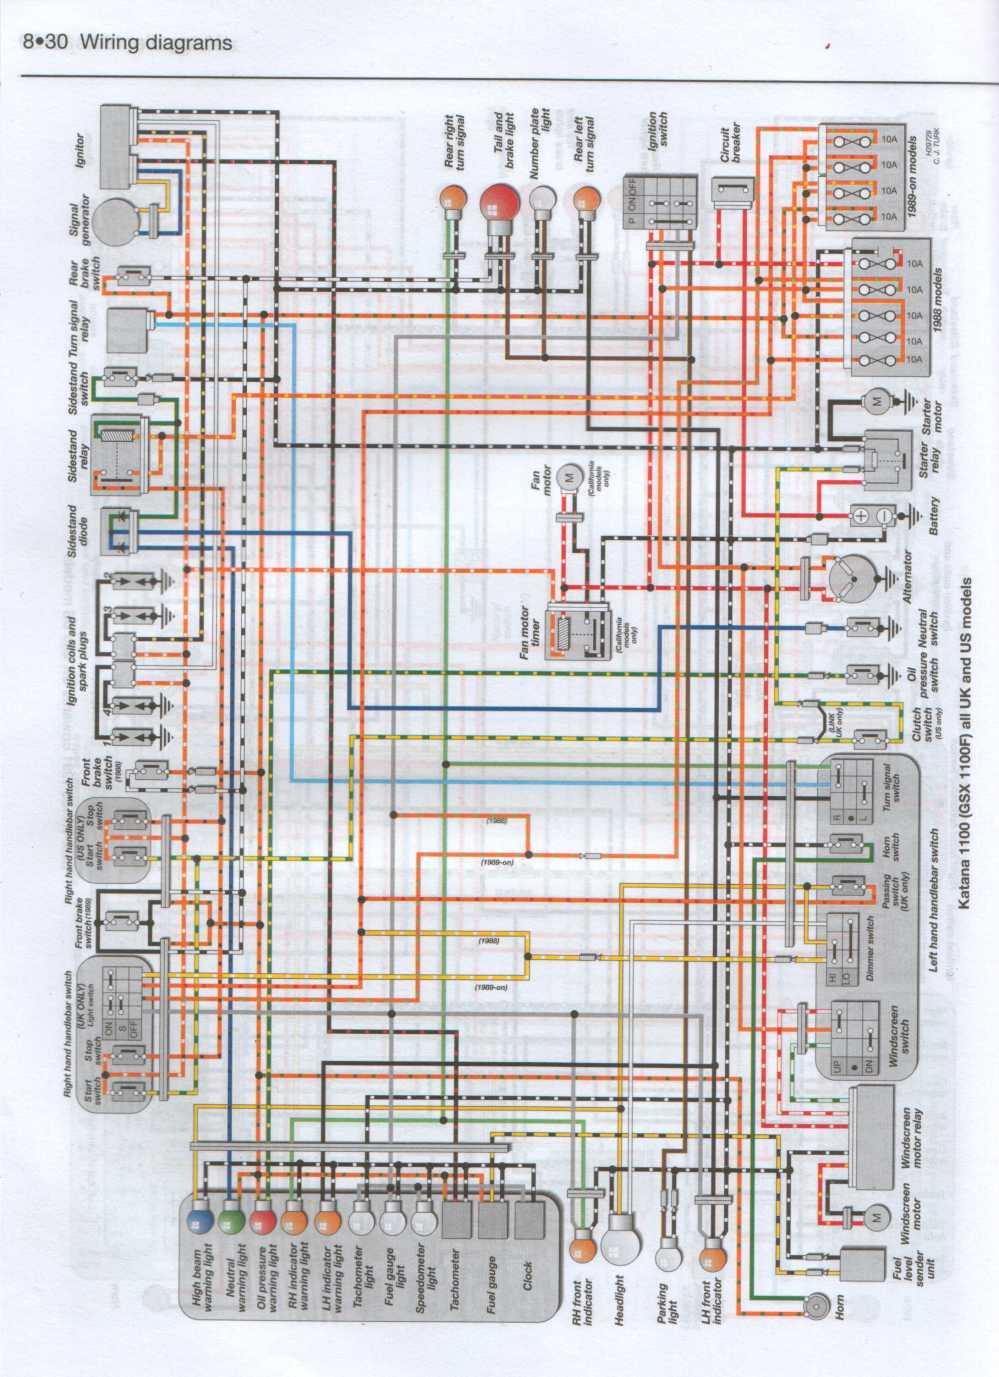 medium resolution of gsxr 750 wiring diagram efcaviation com 22 1275754339 gsxr 750 wiring diagram efcaviation com 1998 gsxr 750